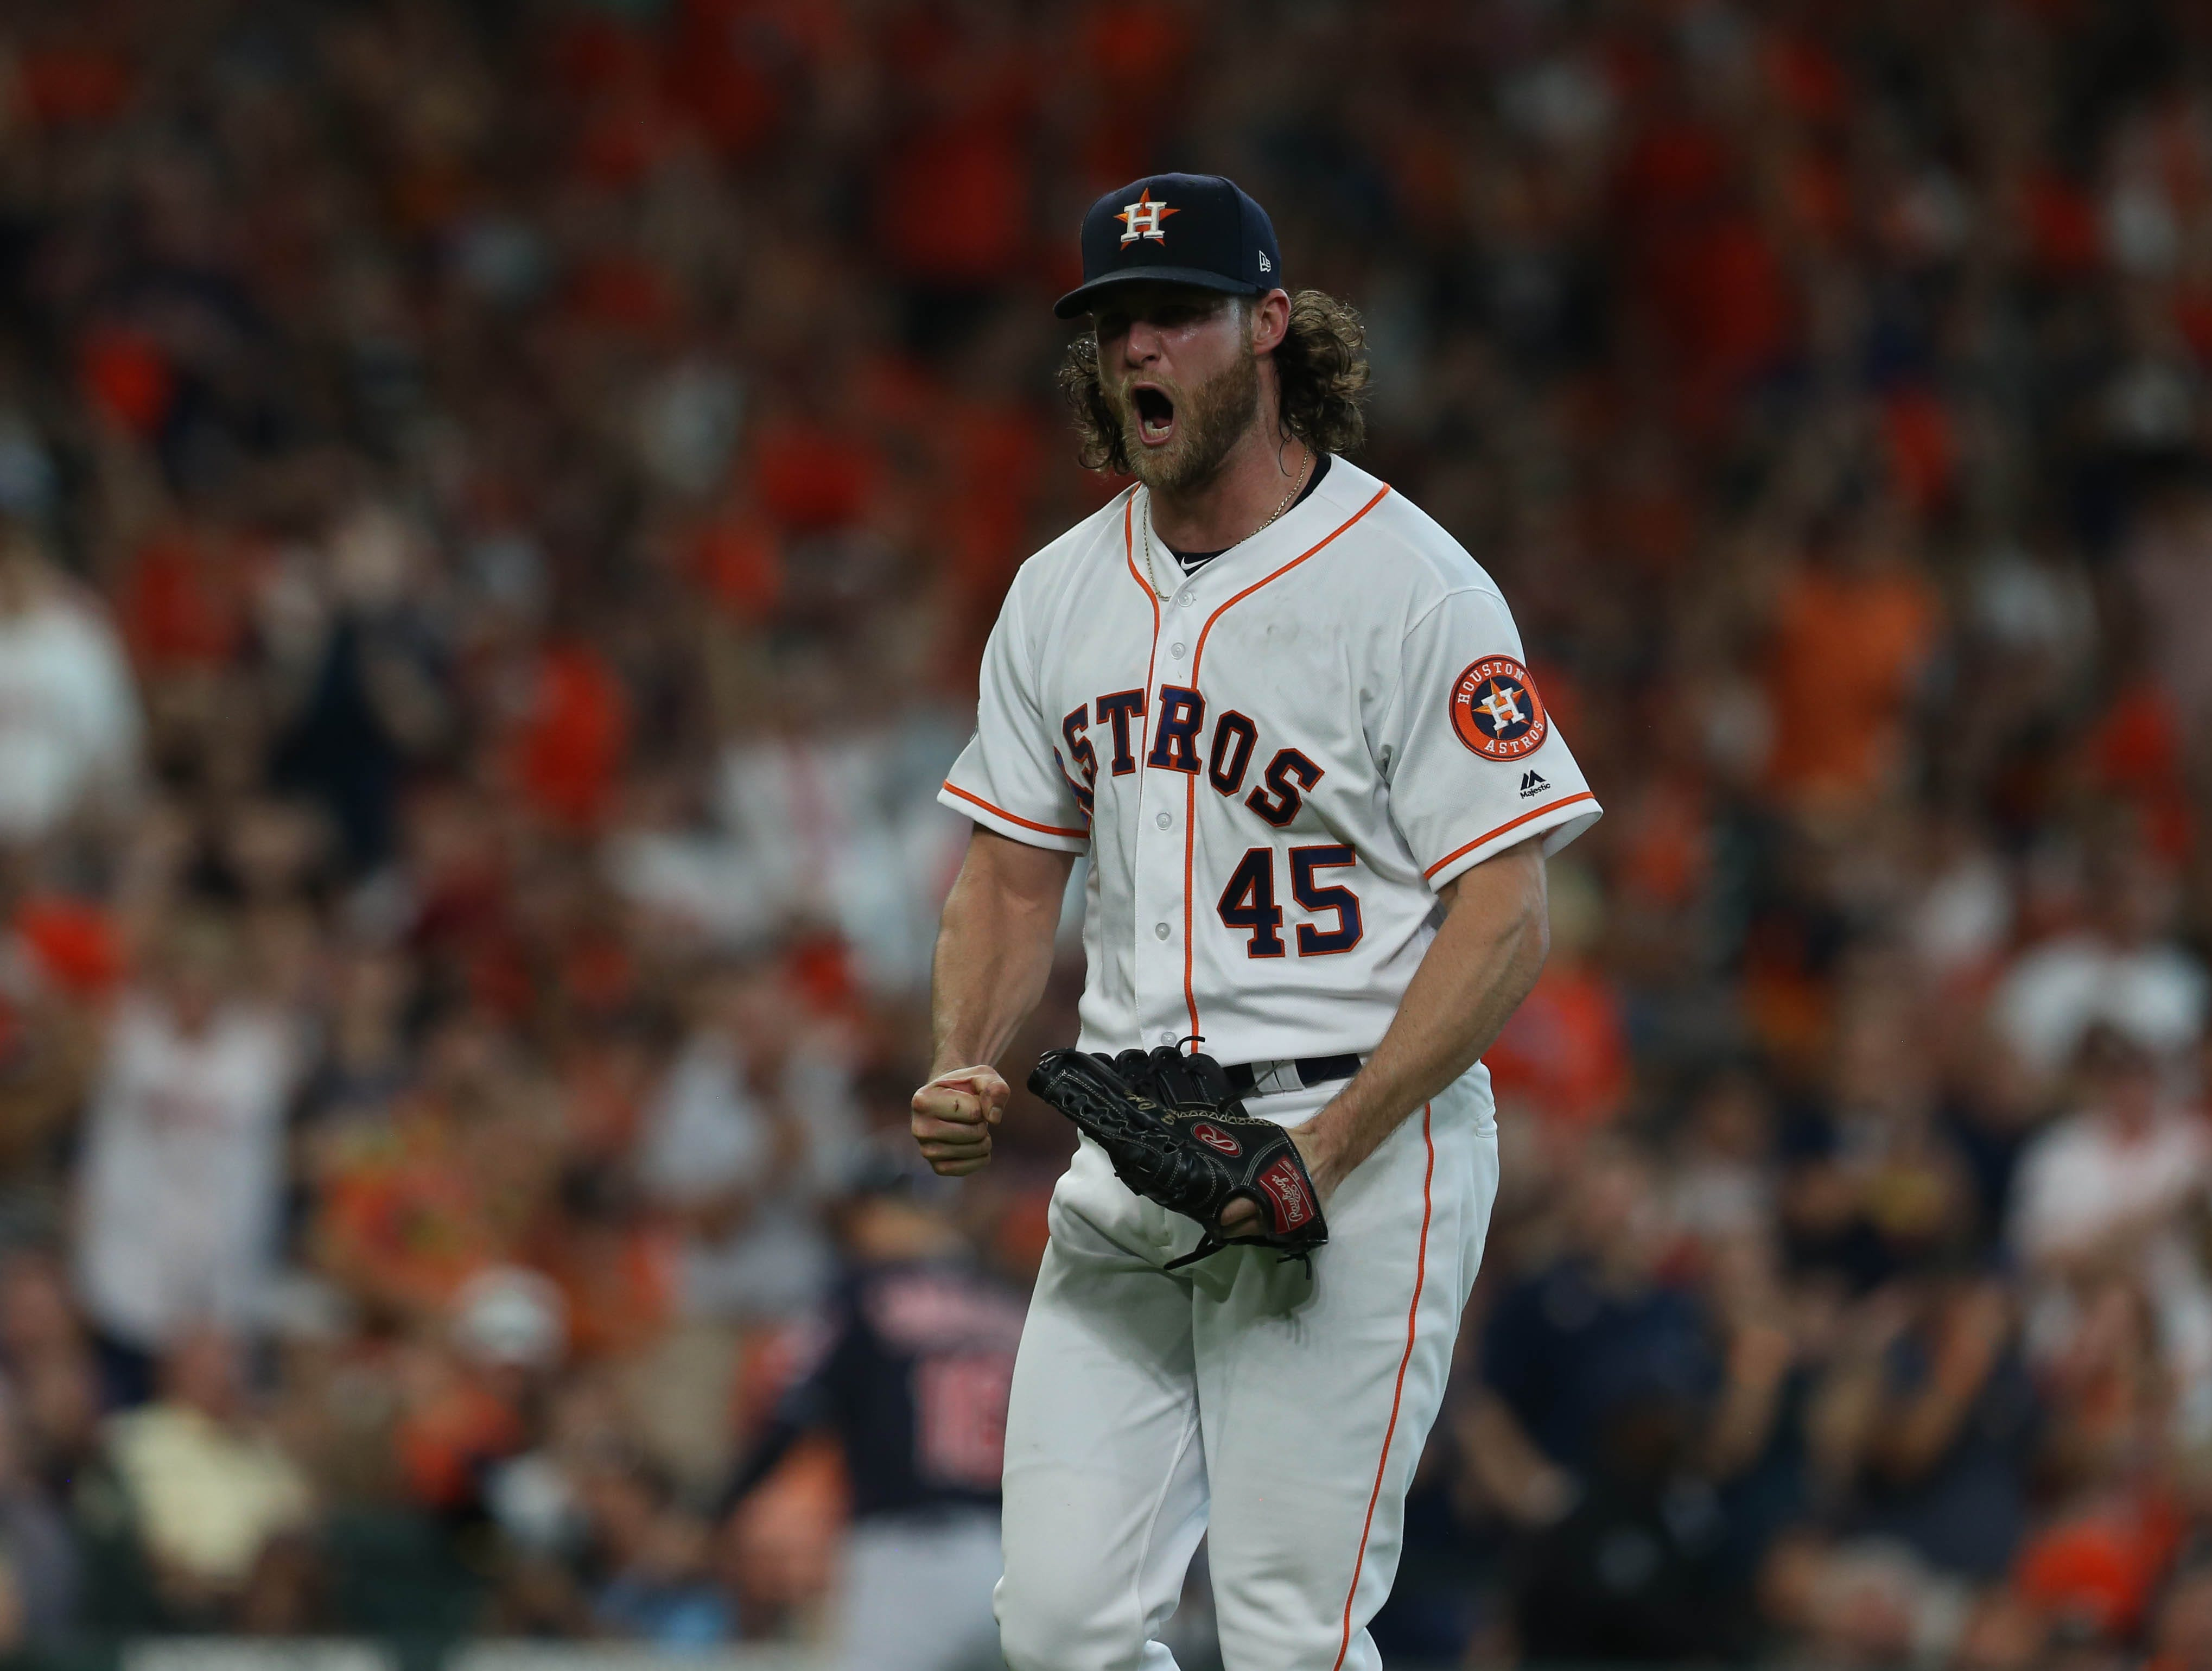 24. Gerrit Cole, Houston Astros starting pitcher.